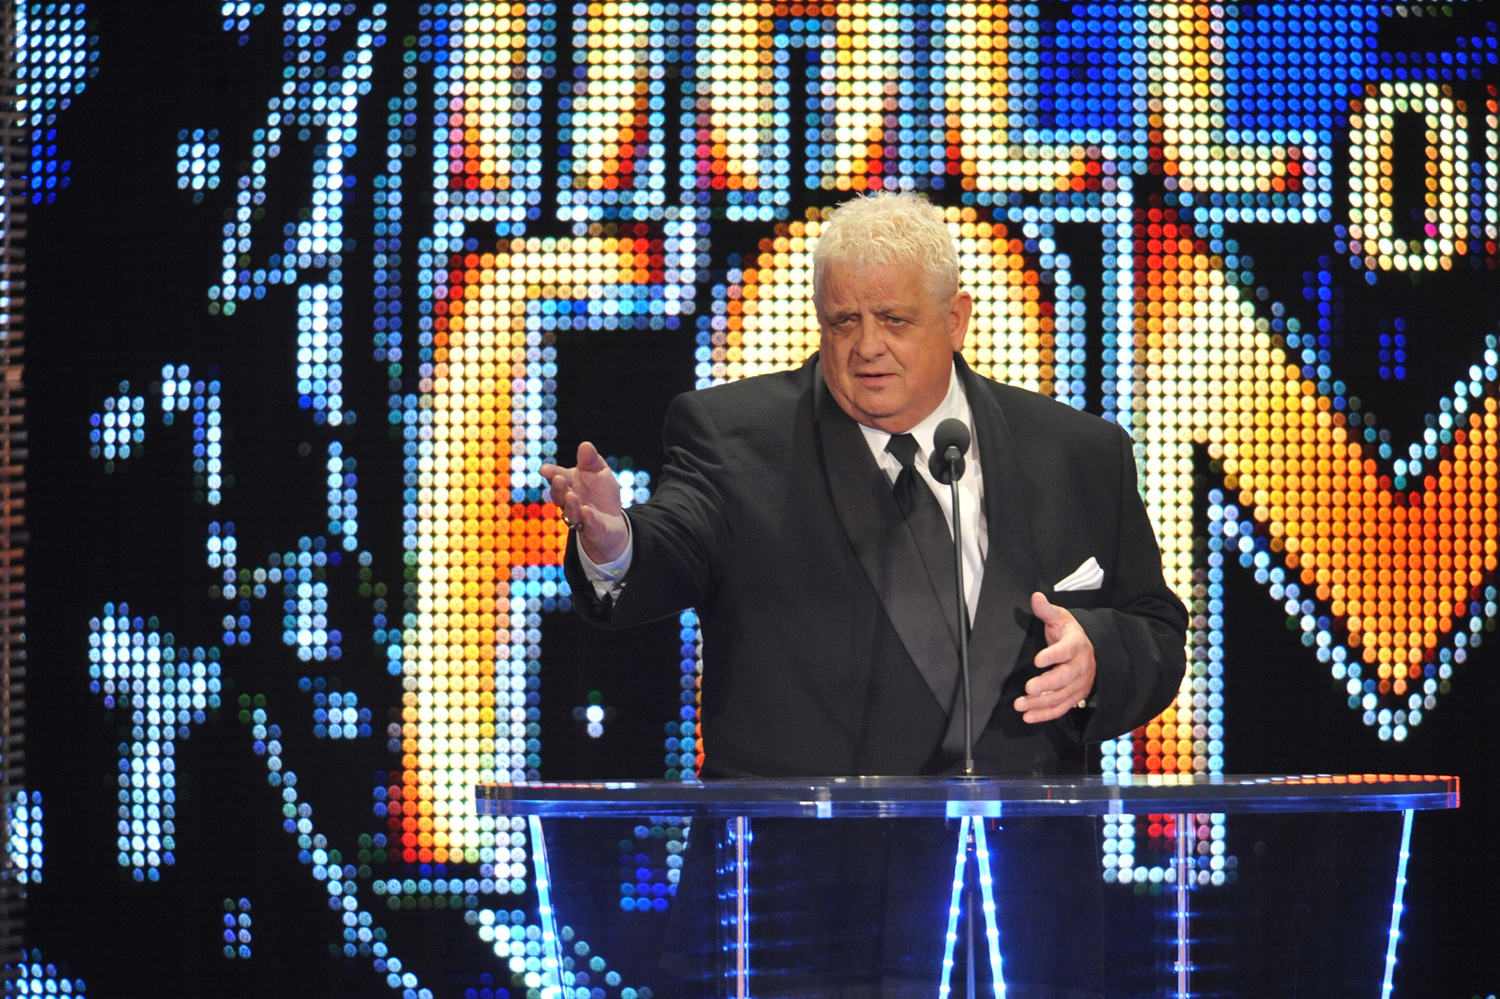 Dusty Rhodes attends the 2011 WWE Hall of Fame induction ceremony at the Philips Arena in Atlanta on April 3, 2011